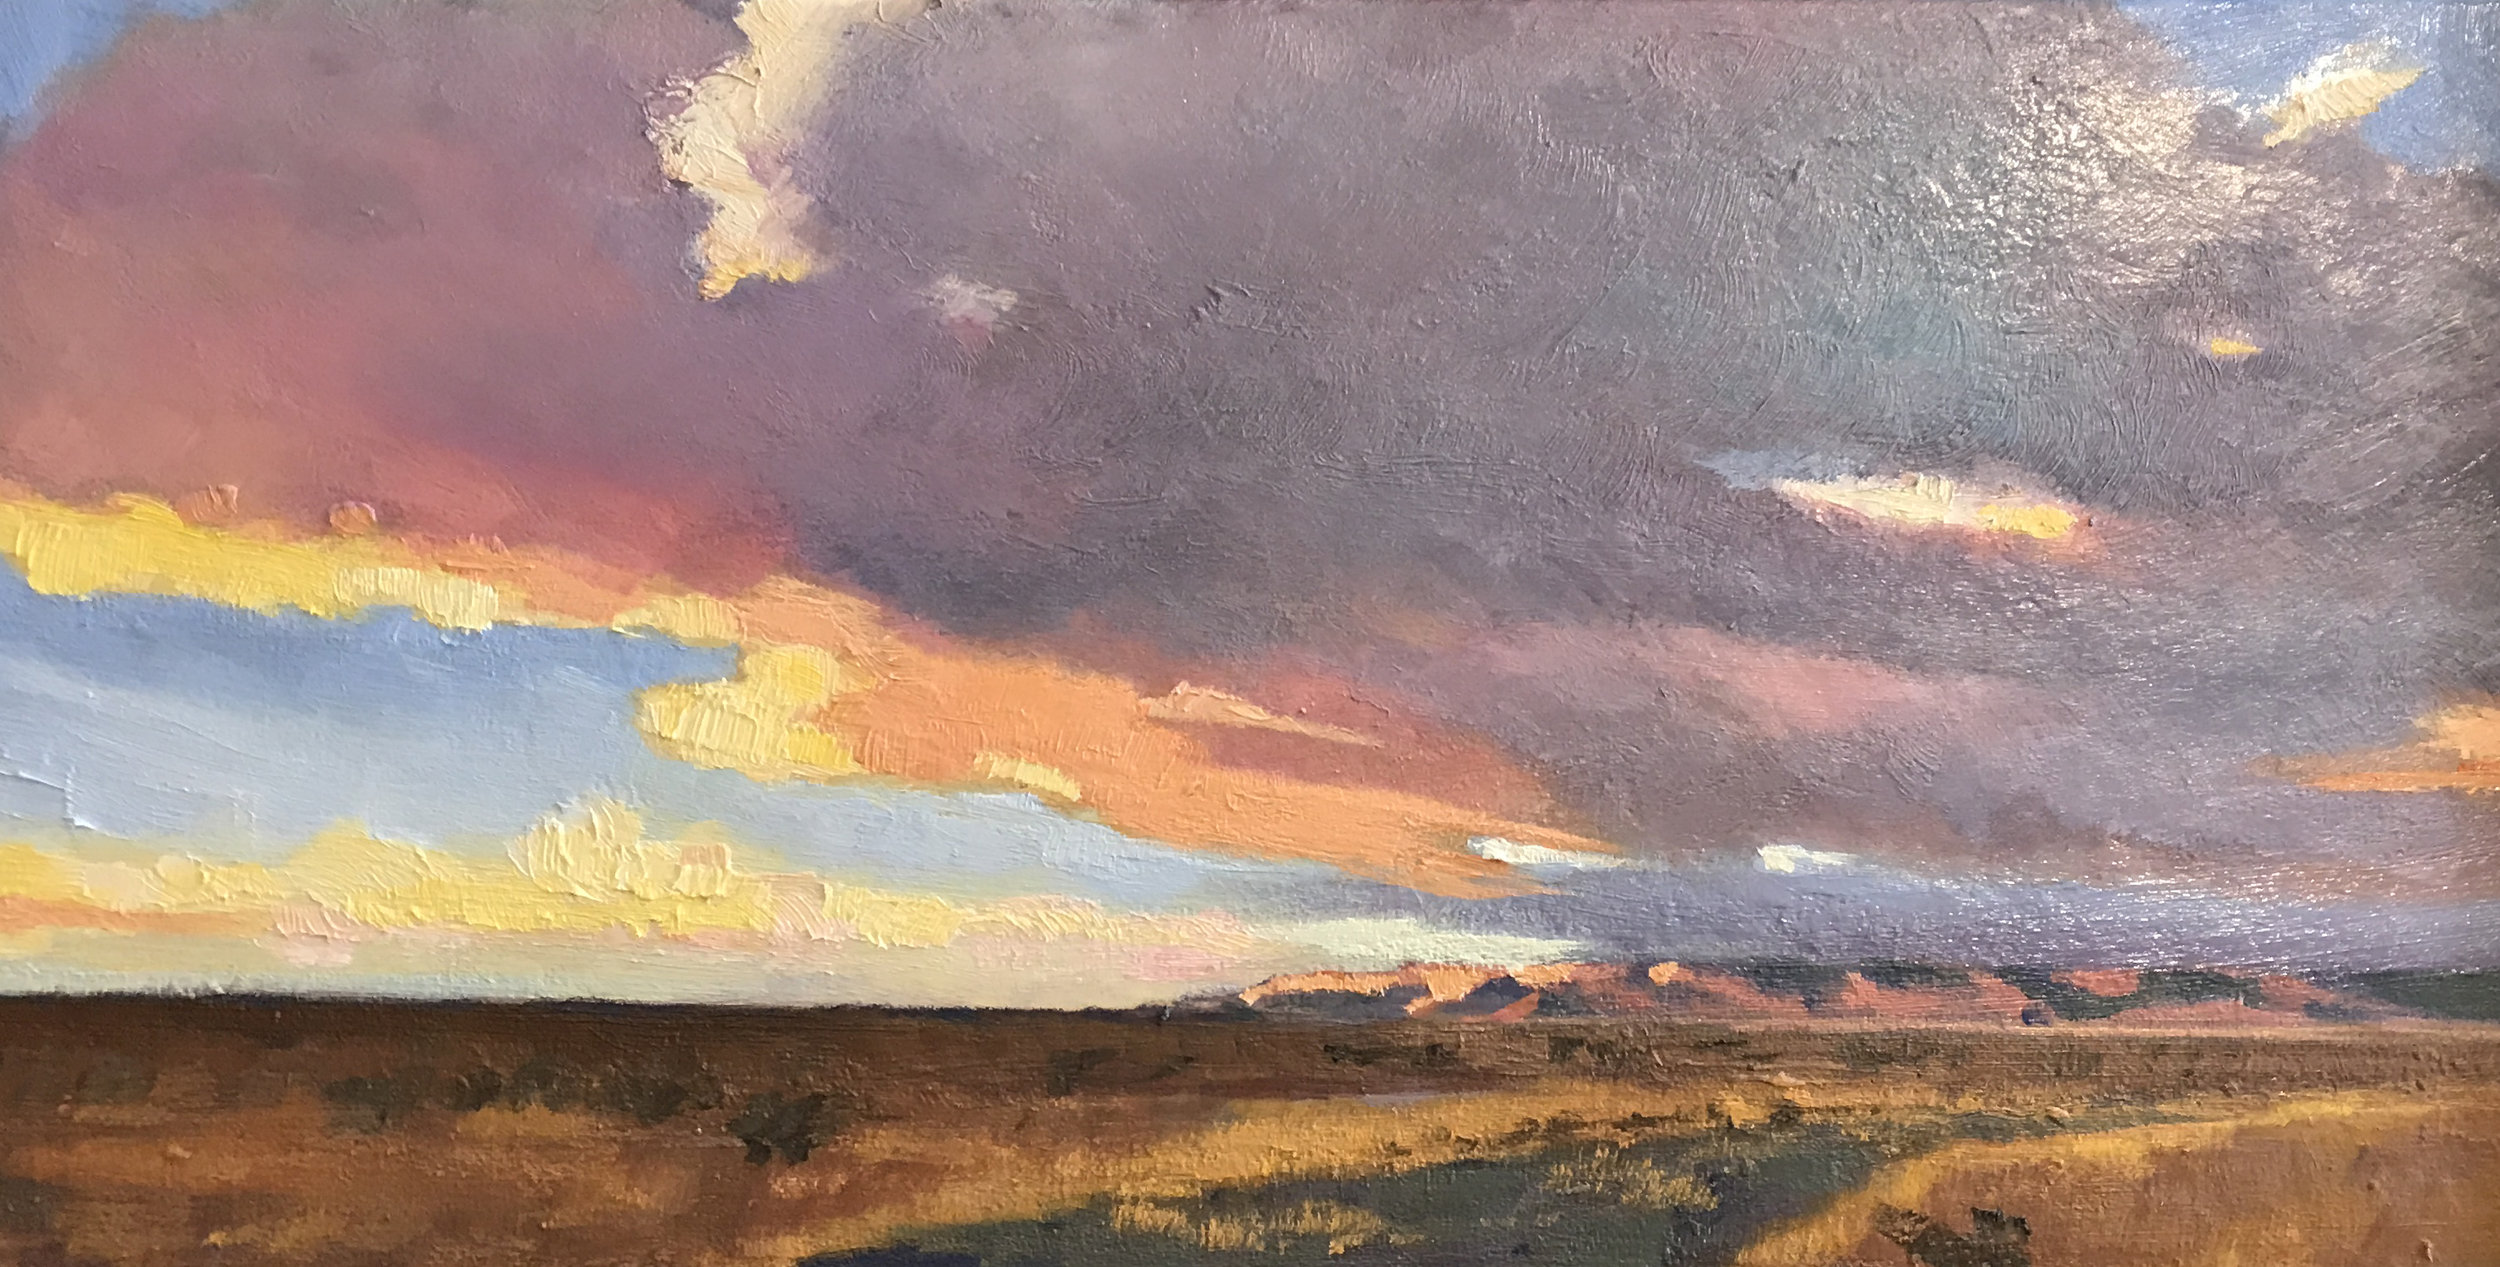 Sunrise, Surprise Valley 8x16, oil, druian.jpg